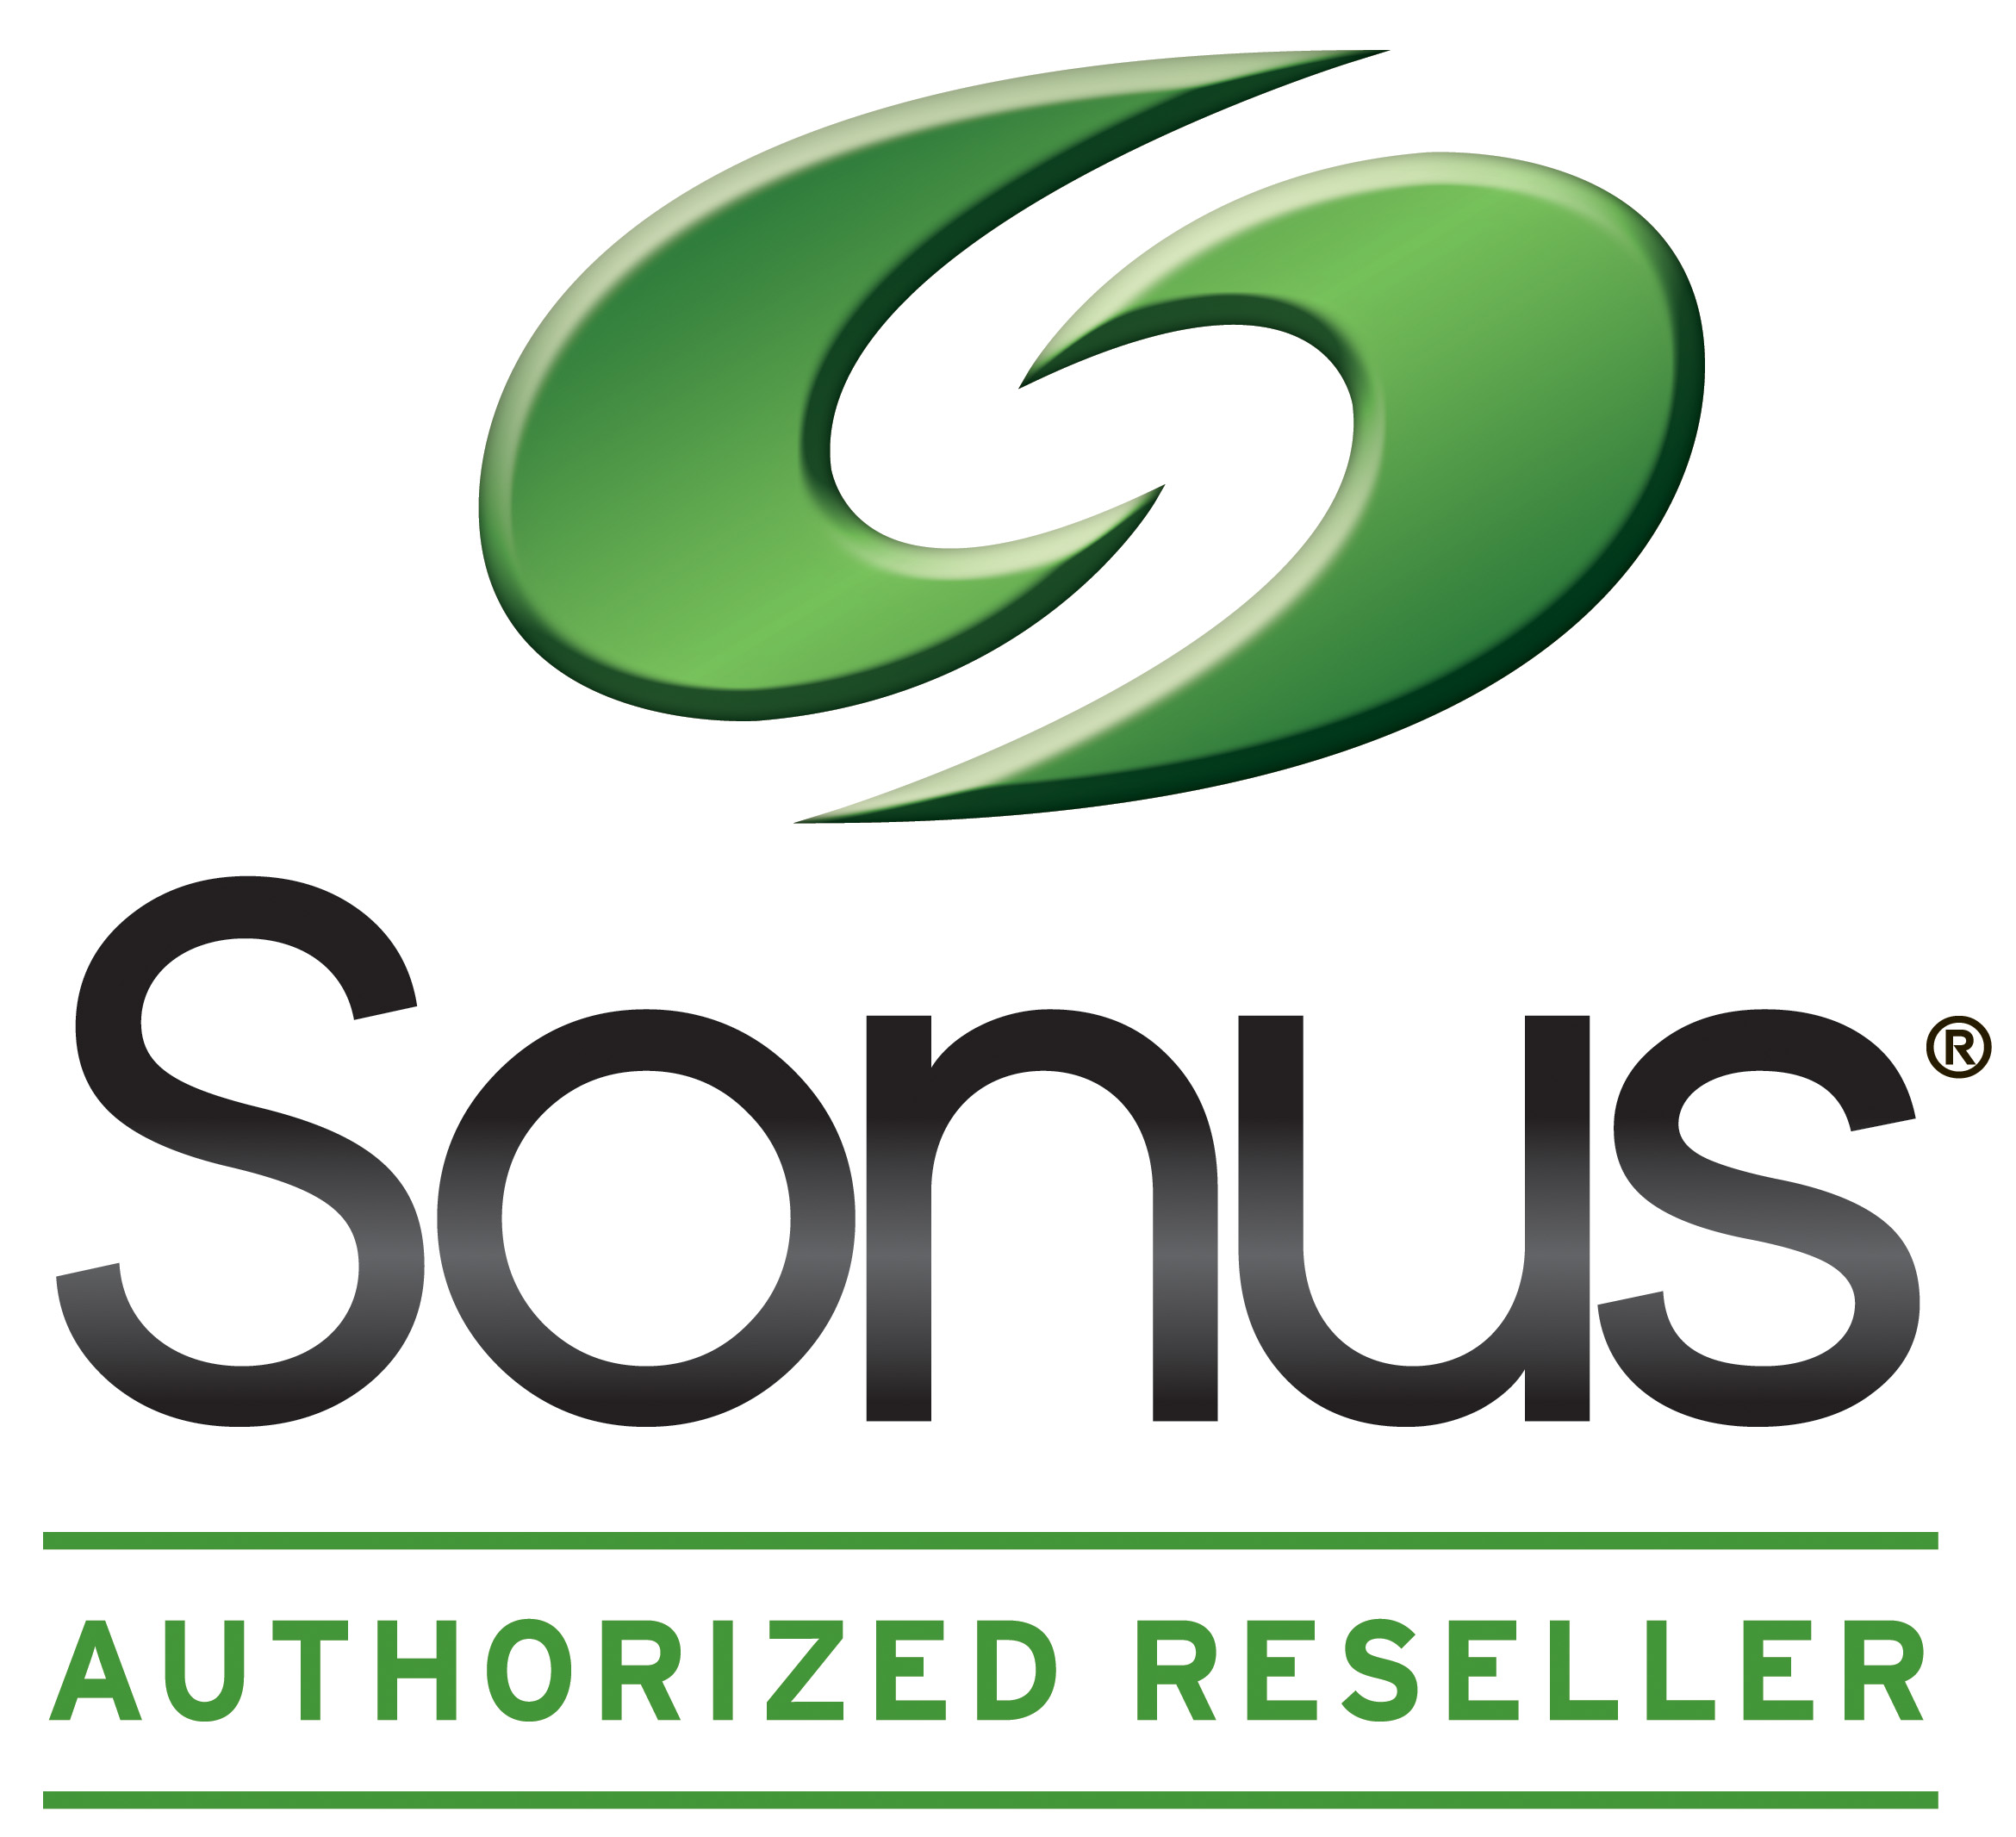 Sonus - Sonus enables and secures real-time communications so the world's leading service providers and enterprises can embrace the next generation of 4G/LTE solutions including VOIP, Video, Instant Messaging and online collaboration